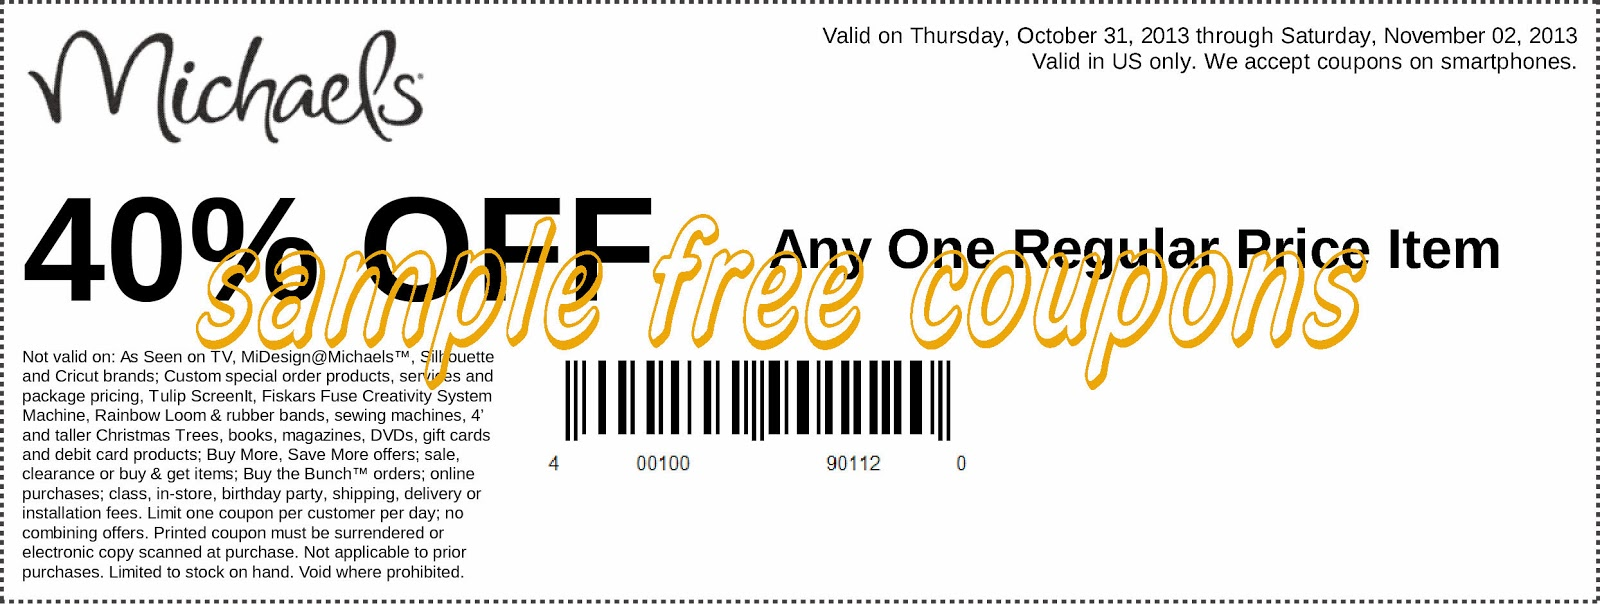 BeFrugal has printable coupons for + restaurants and fast-food chains. Just find the restaurant you are looking for below and click on the logo to get the latest coupons. Then just print, eat & save!